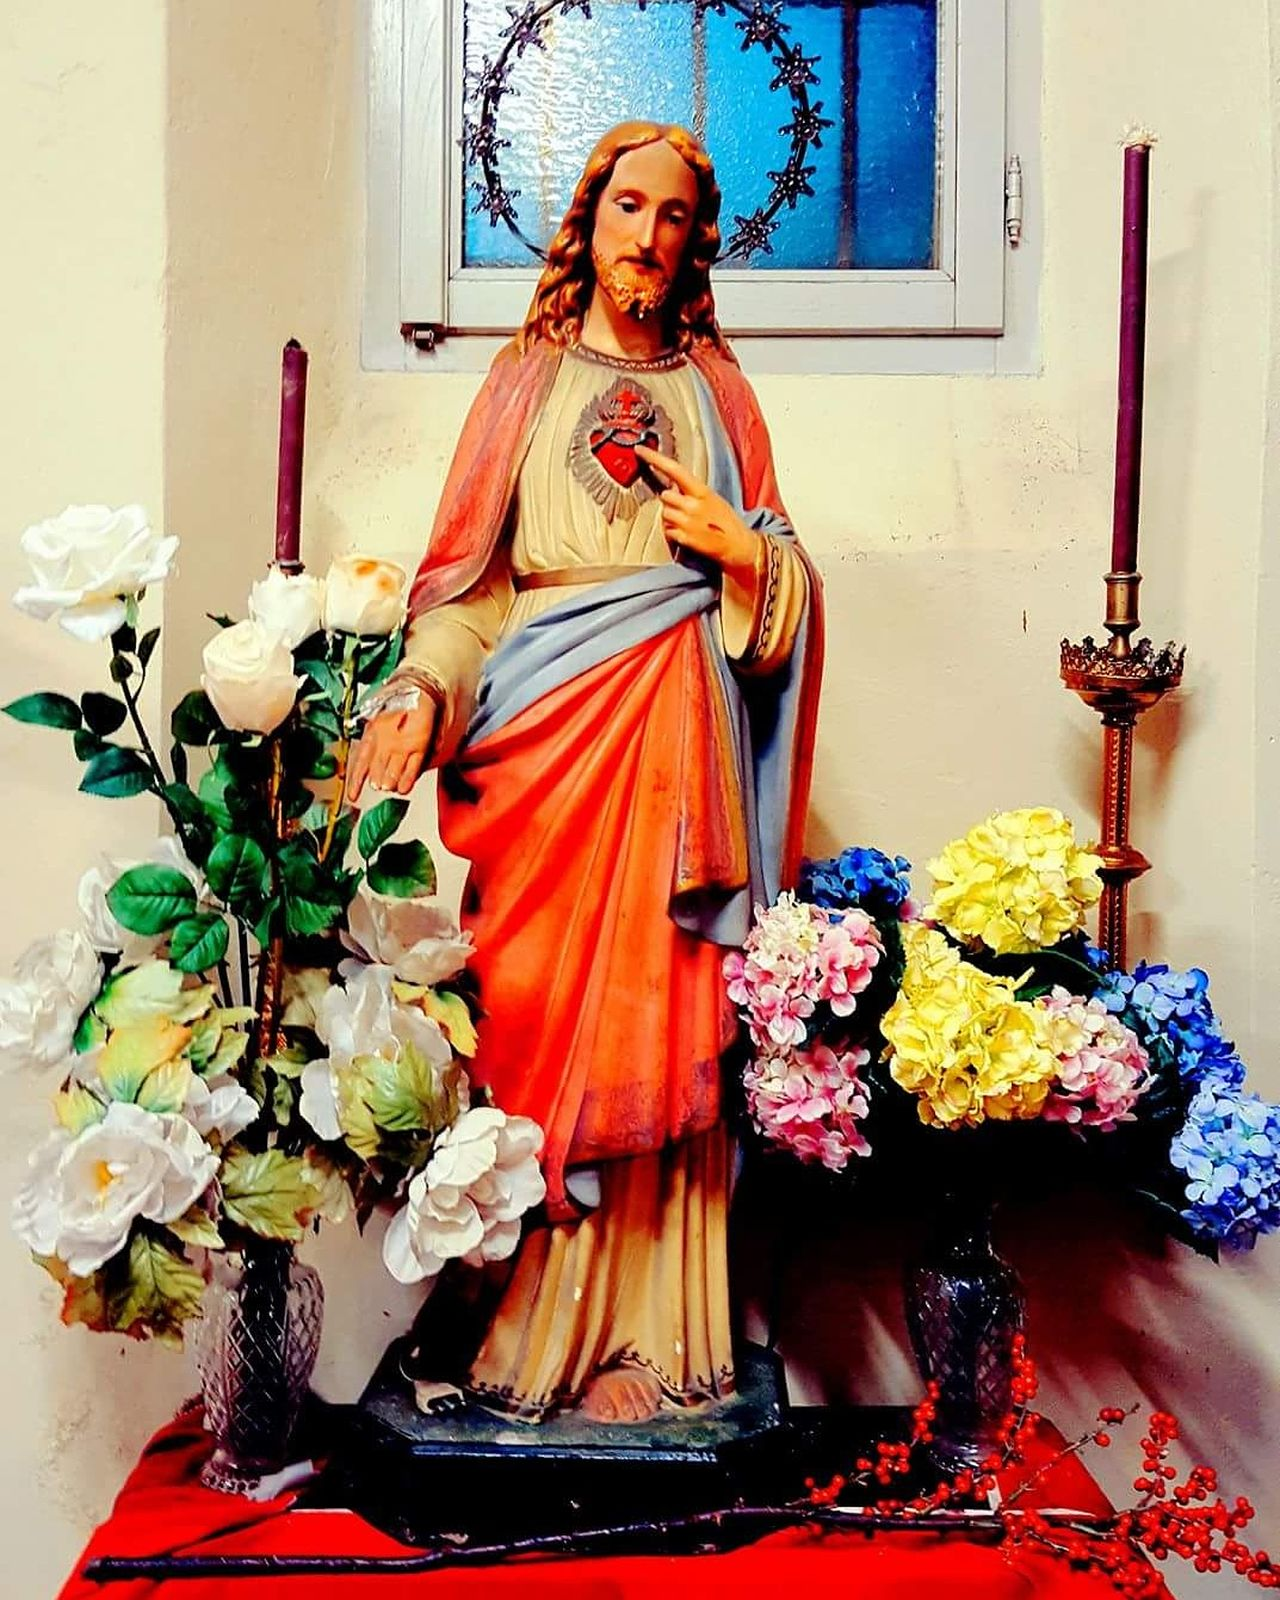 Gesù  Jesus Jesus Christ Jesuschrist Jesuscristo Jesus Statue Jesusculture JesusIsLord Jesus Cristo Cristo Redentor Cristoredentor Cristo Rei Adults Only Indoors  One Woman Only People Adult One Person Only Women